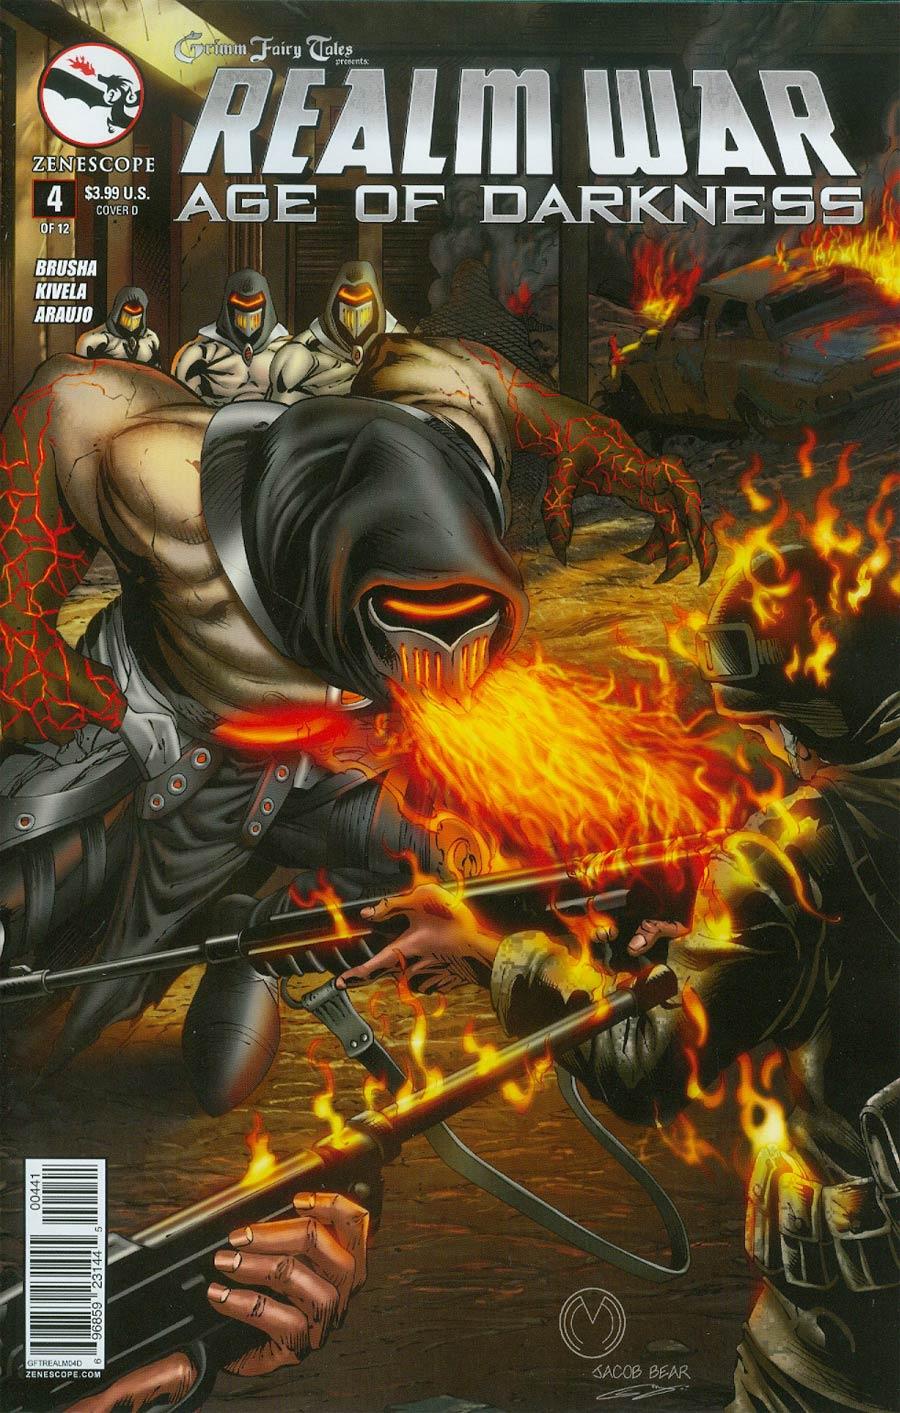 Grimm Fairy Tales Presents Realm War #4 Cover D Marat Mychaels (Age Of Darkness Tie-In)